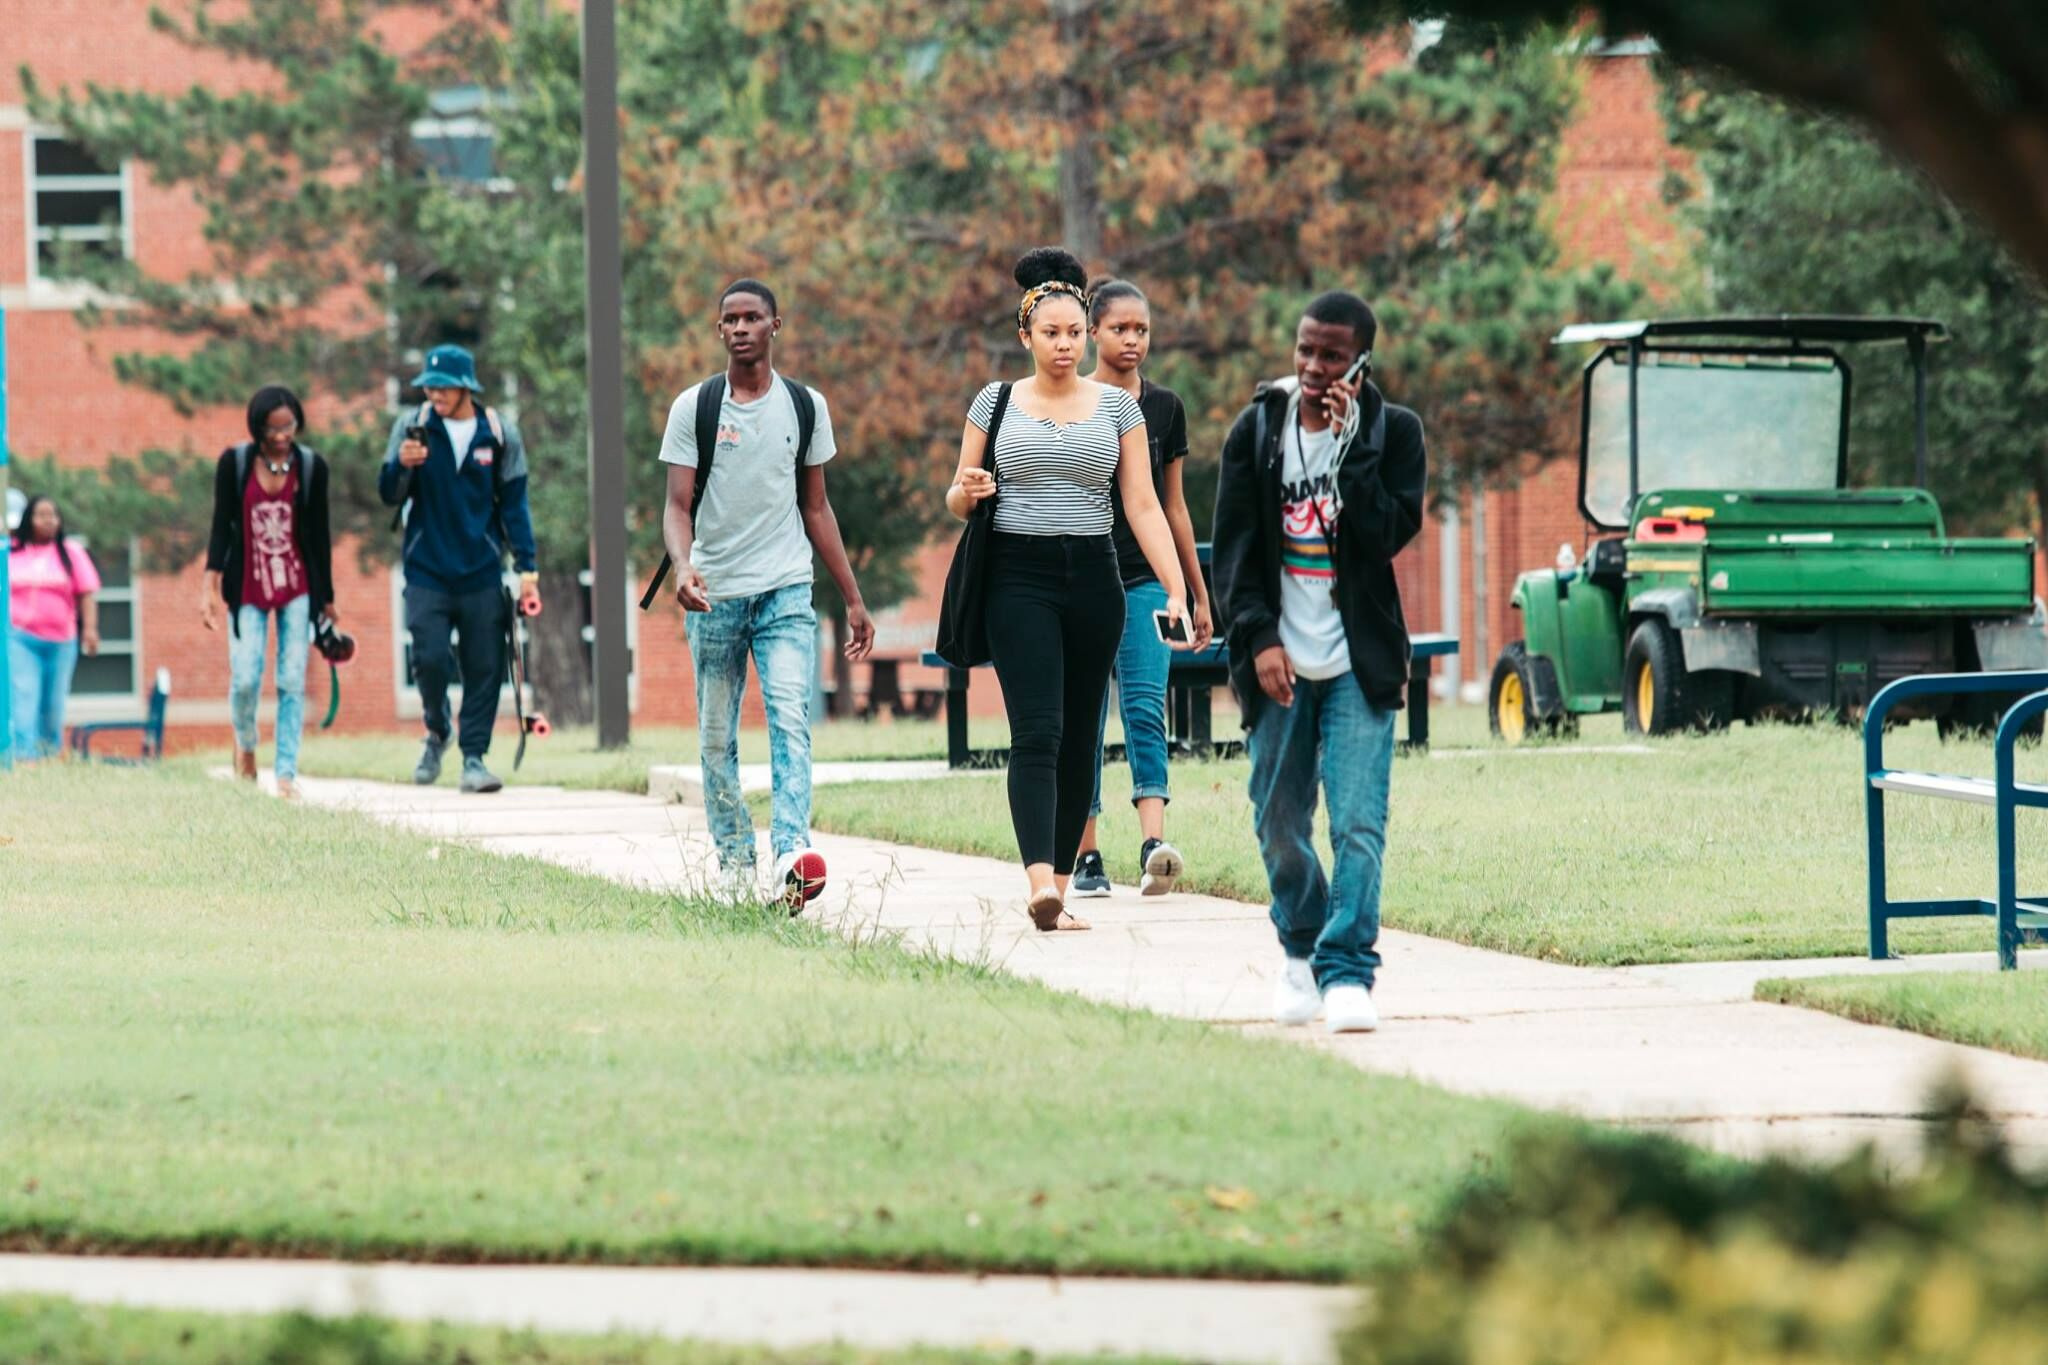 Langston University Welcomes Back Students Fourth Consecutive Year